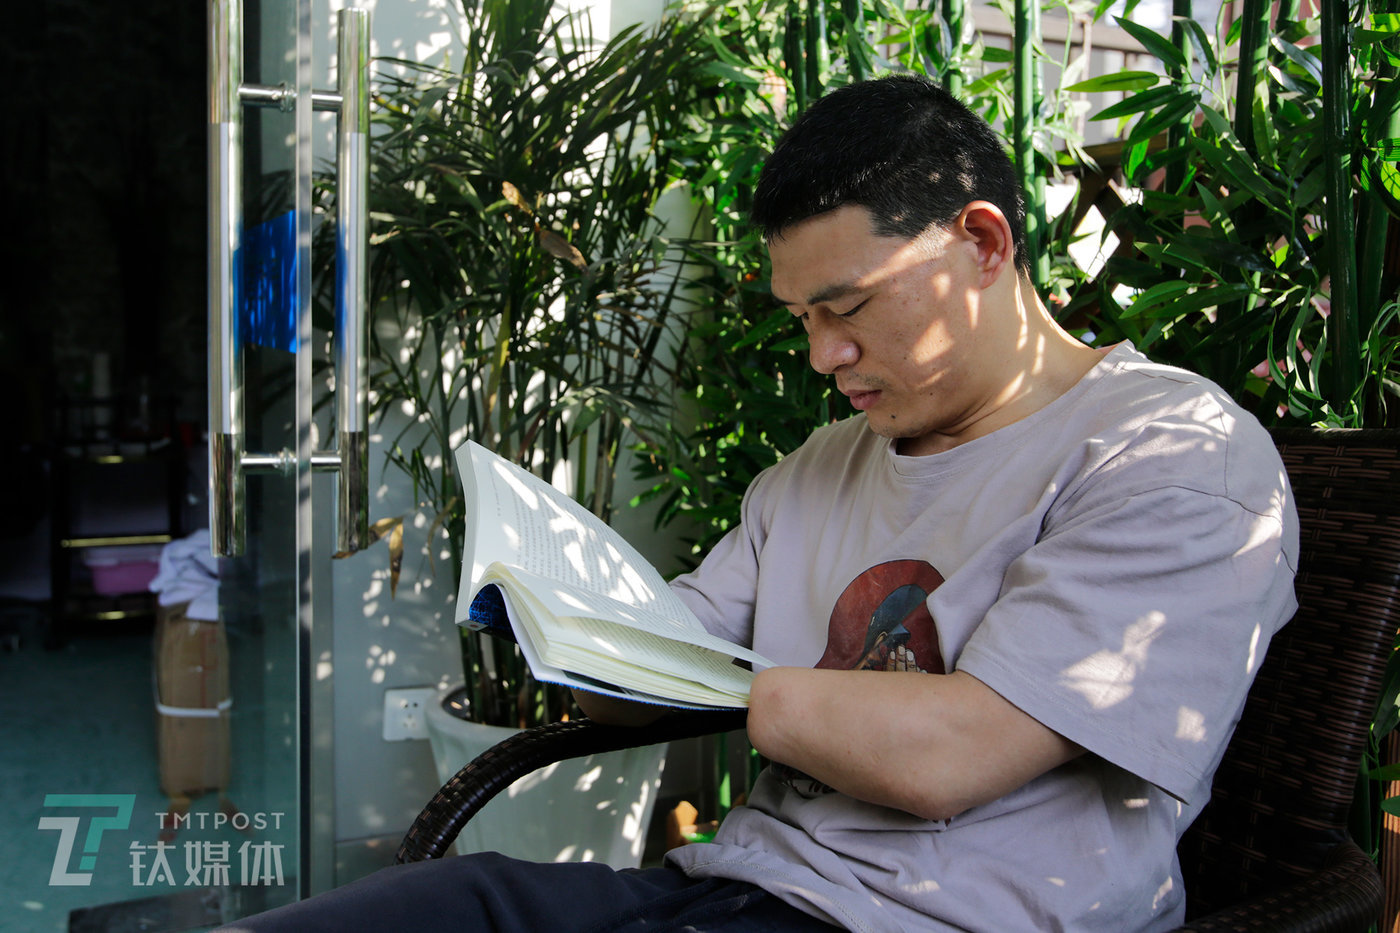 Shanghai. Taking a moment of rest from fitting the cavity, Ni Mincheng reads a book.